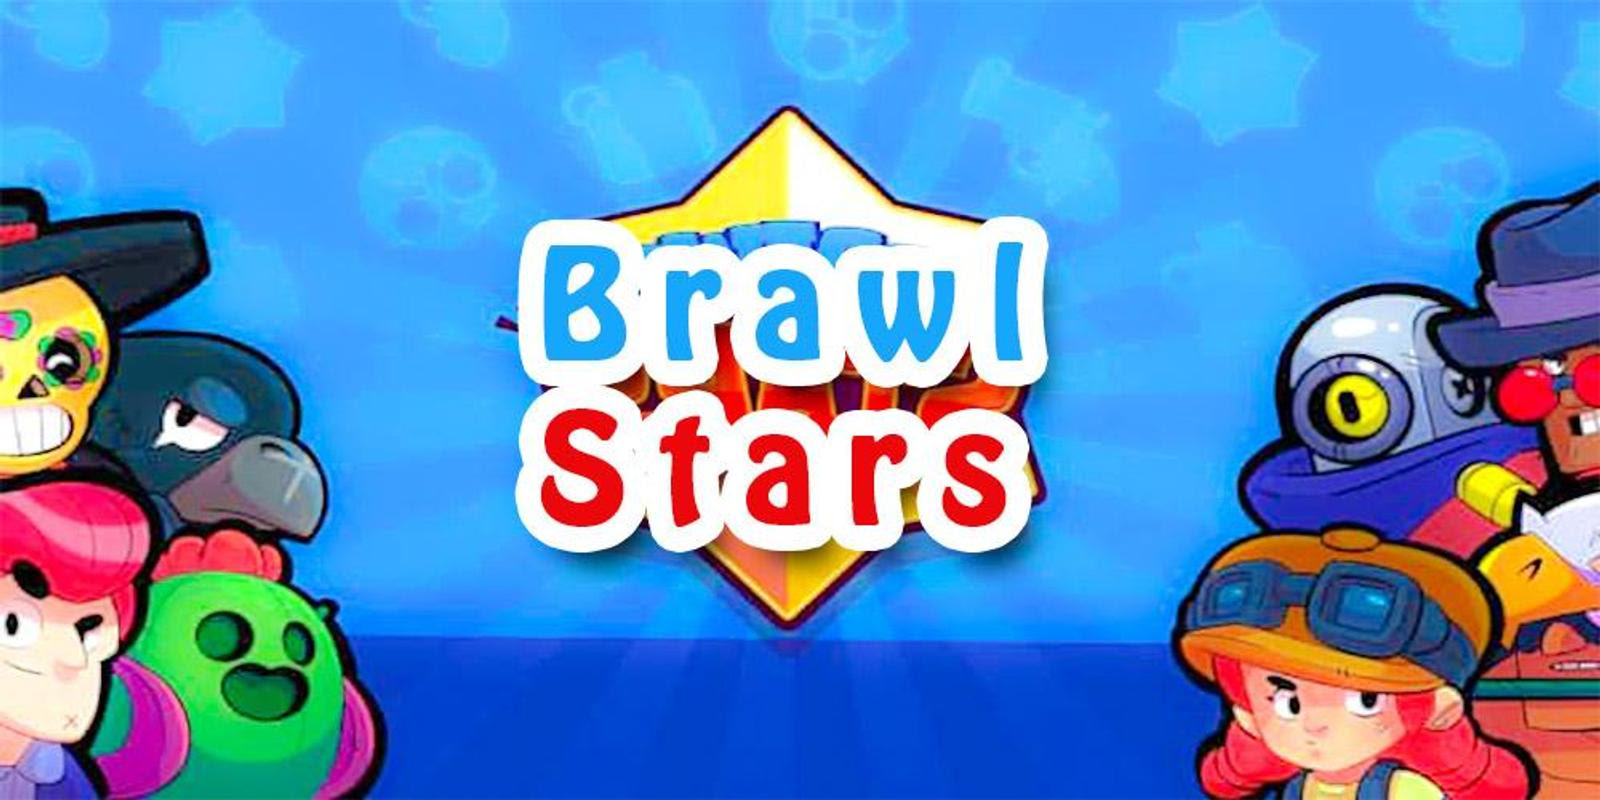 Download Game Brawl Stars Apkpure - The Michelina Journal